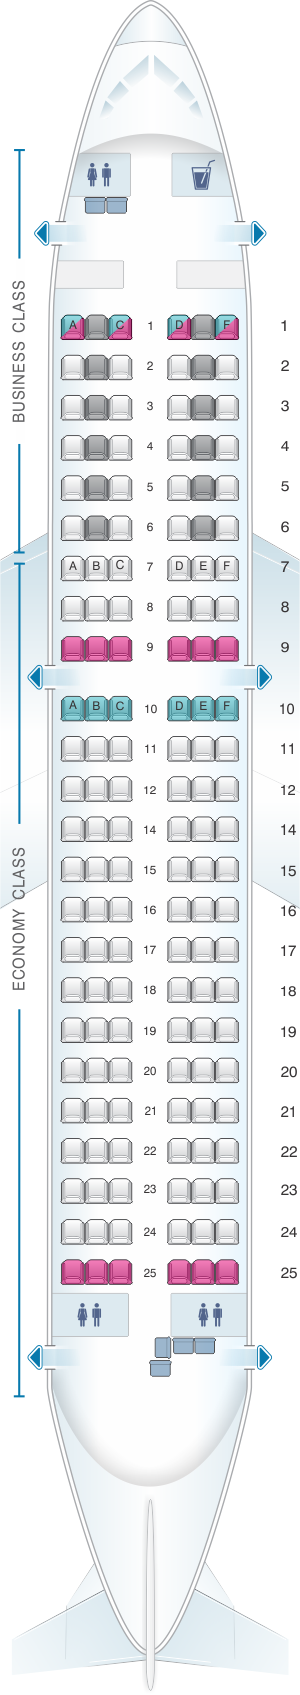 Seat map for Austrian Airlines Airbus A319